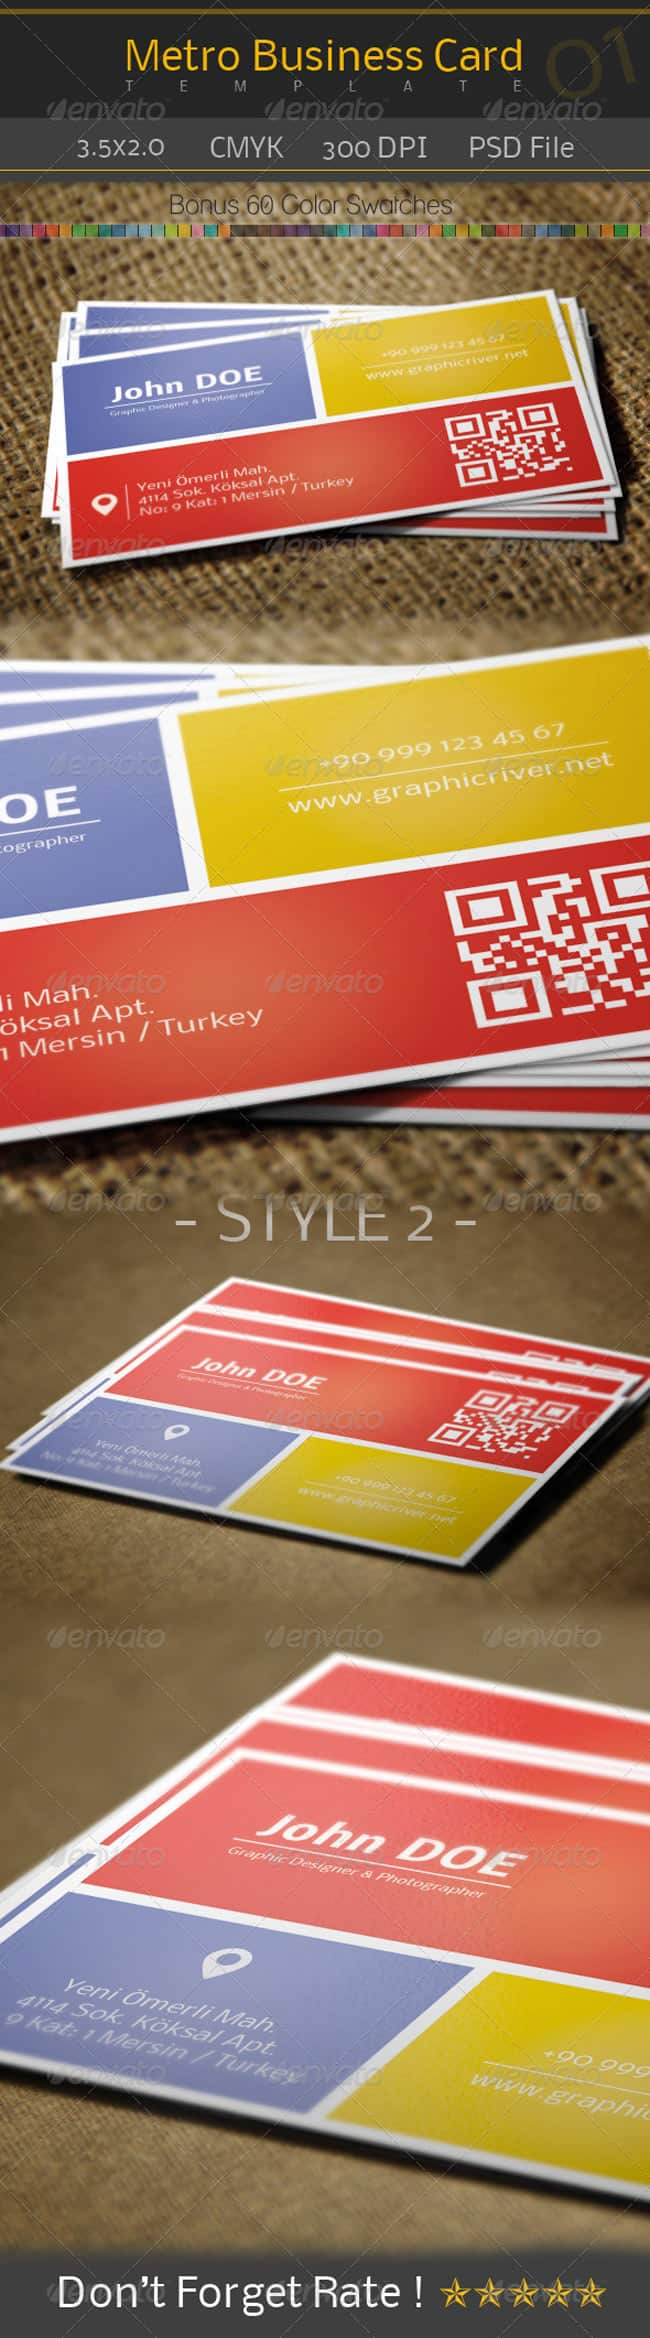 Metro Business Card - 01